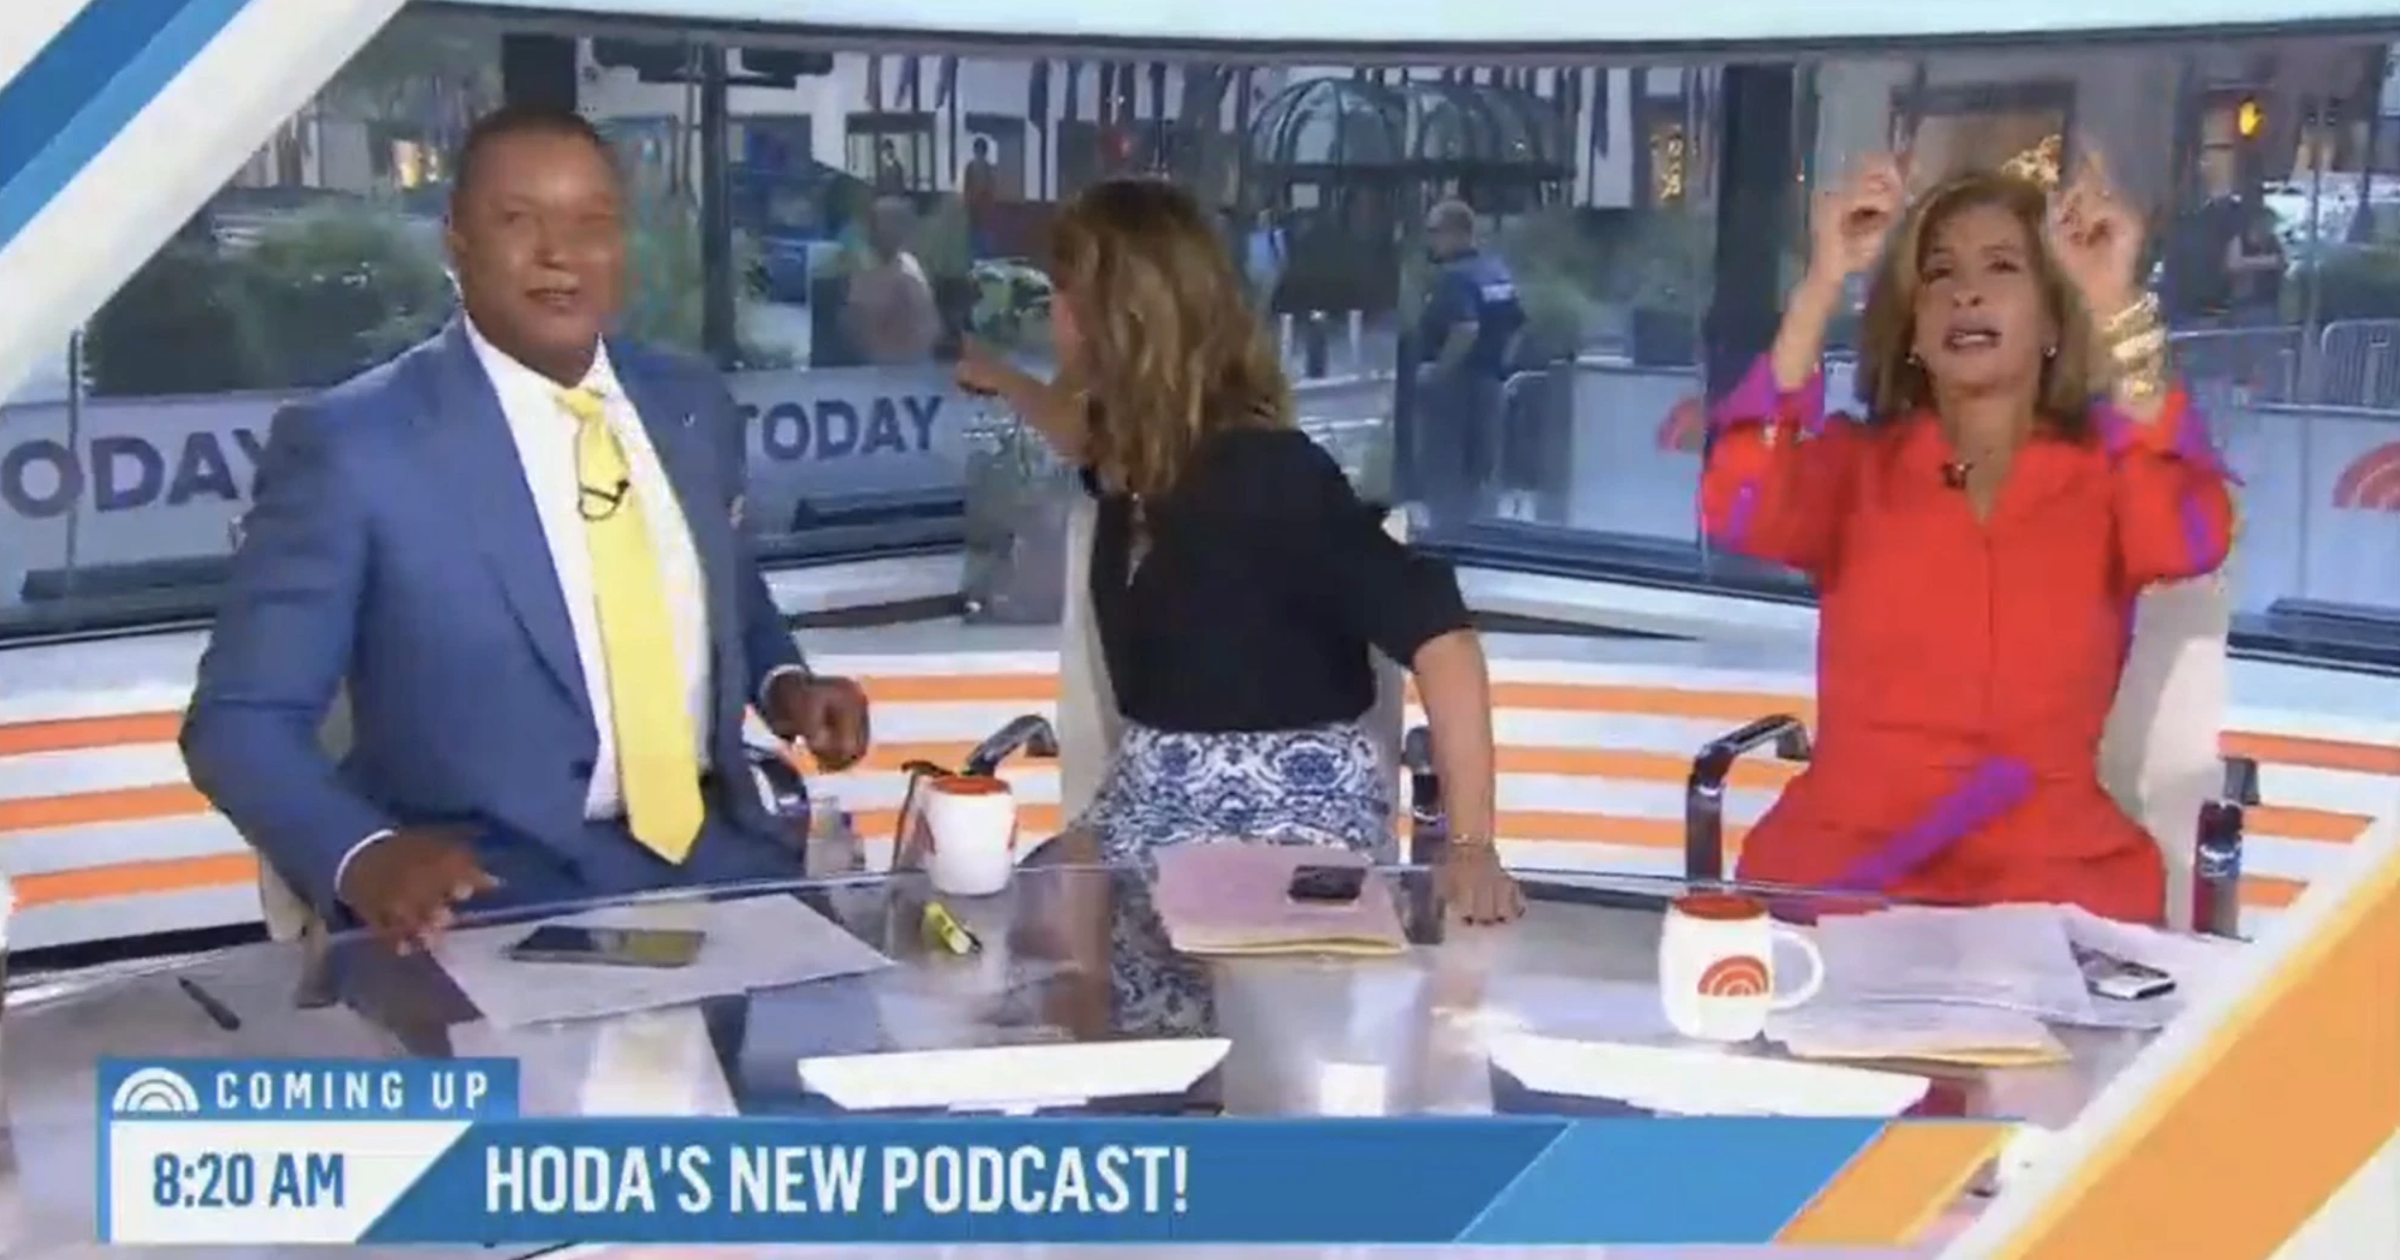 'Today' Show Team Responds After Getting Interrupted by Streaker.jpg